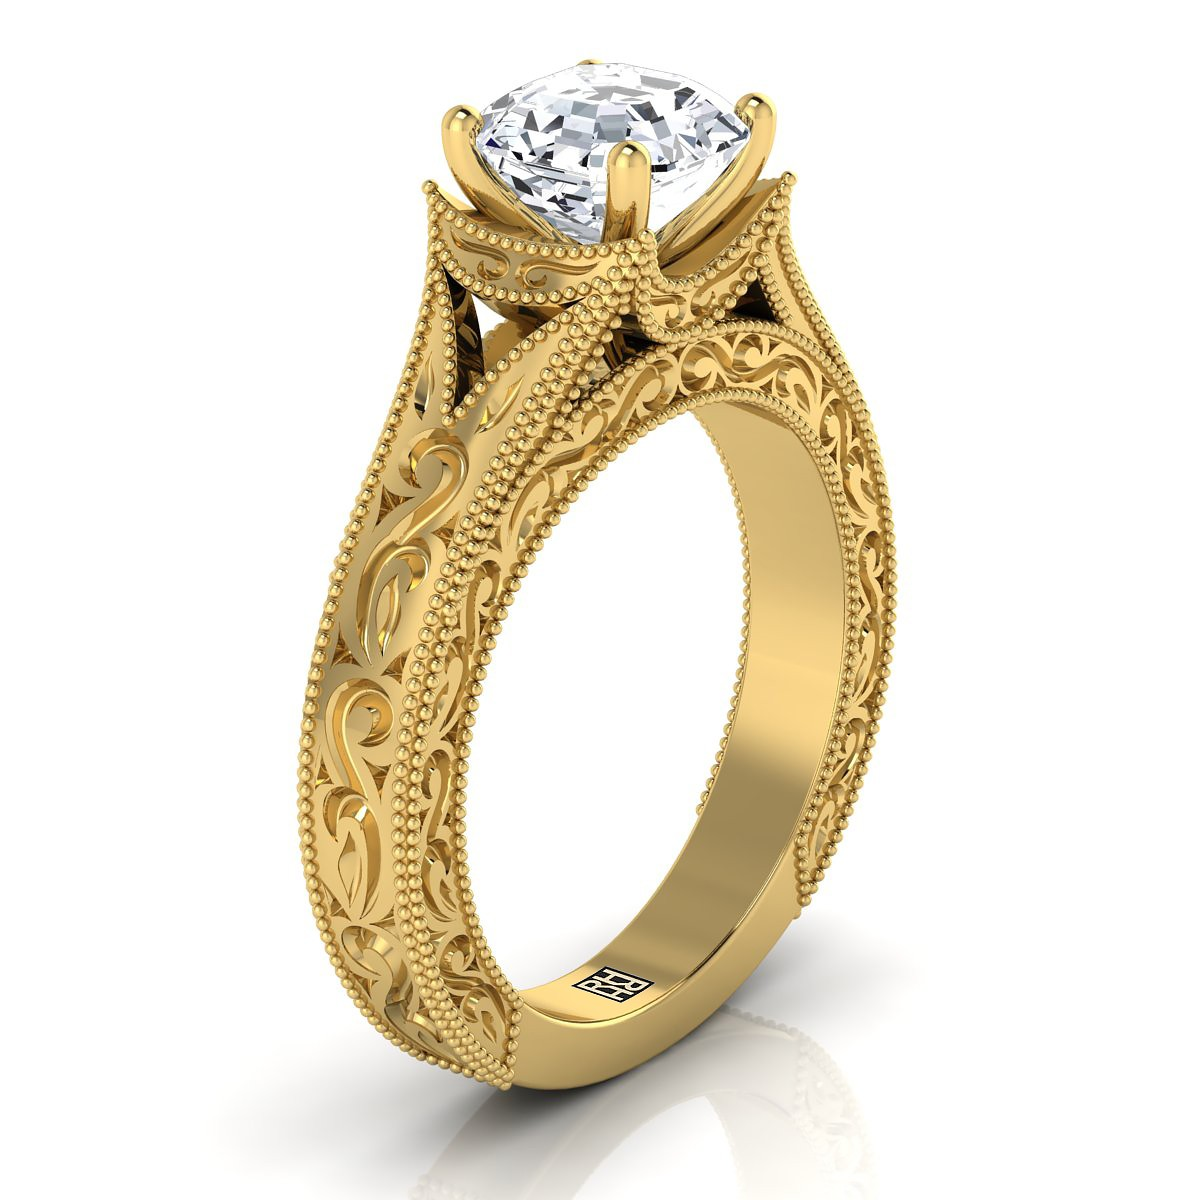 Asscher Cut Antique Inspired Engraved Diamond Engagement Ring With Millgrain Finish In 14k Yellow Gold